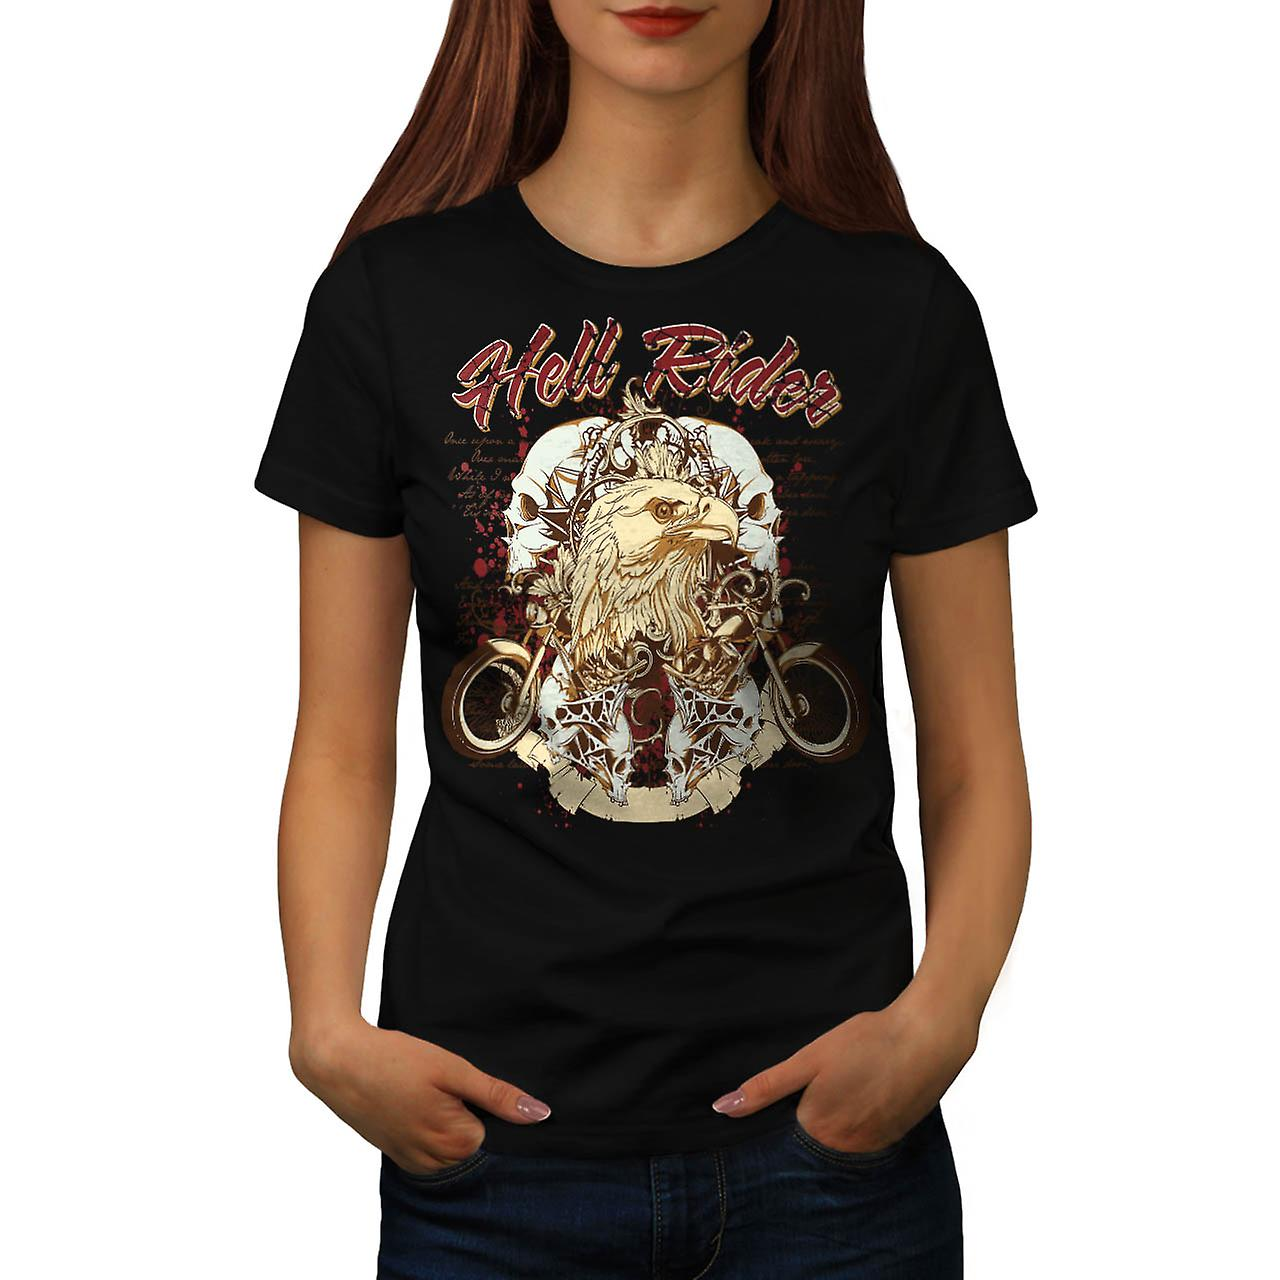 Hell Rider Biker Life Eagle Bike Women Black T-shirt | Wellcoda